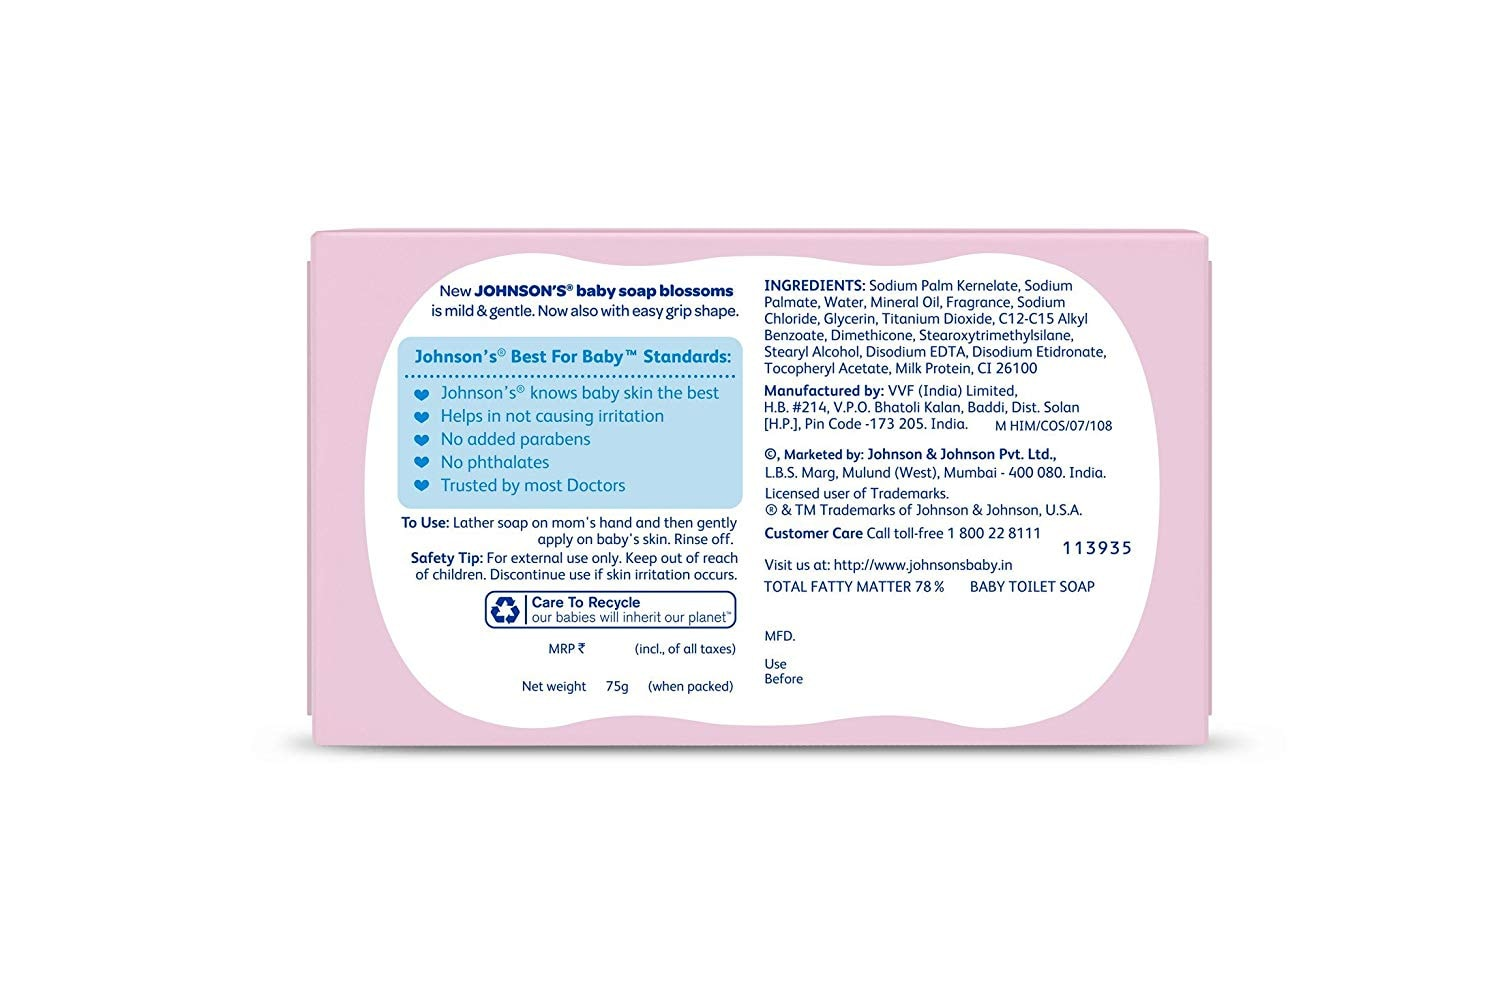 Johnson's Baby Soap Blossoms With New Easy Grip Shape 75 Gm